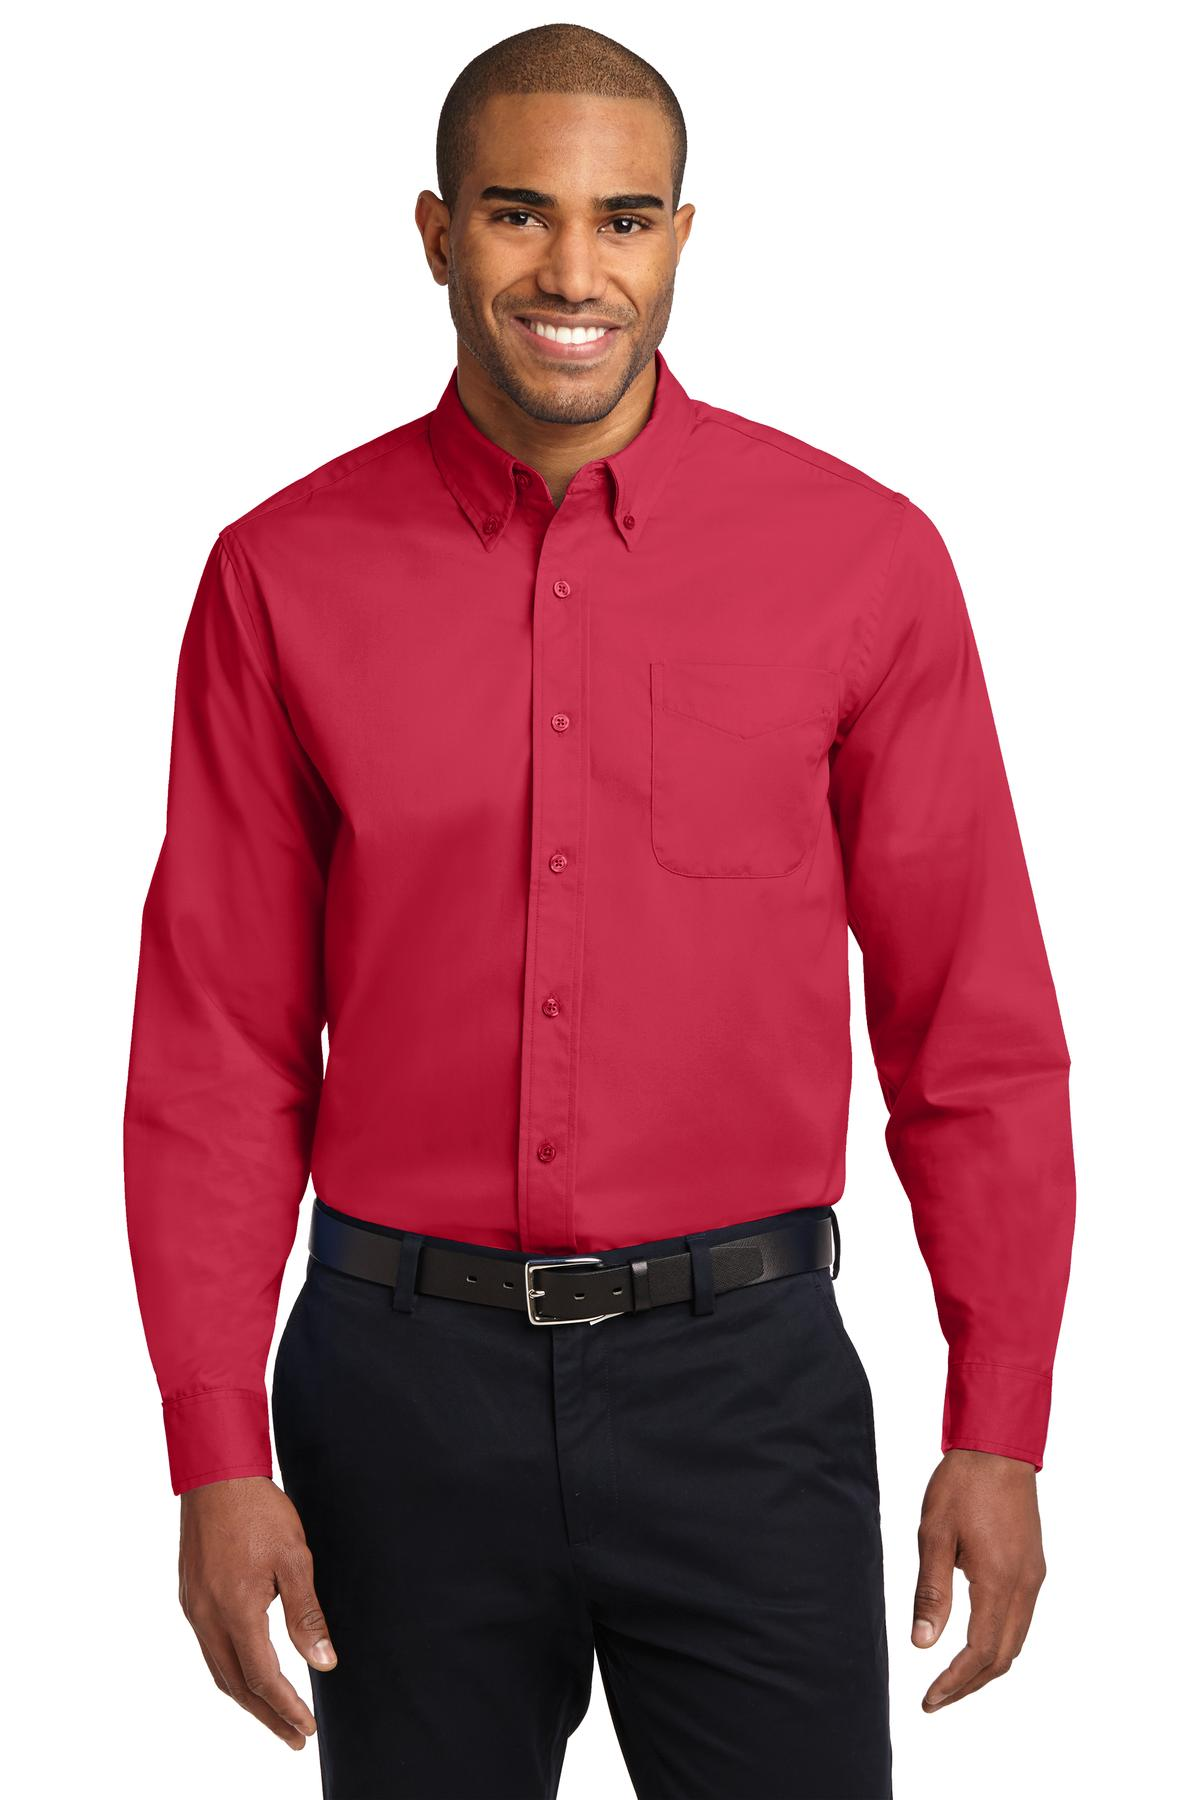 Port Authority ®  Long Sleeve Easy Care Shirt.  S608 - Red/ Light Stone